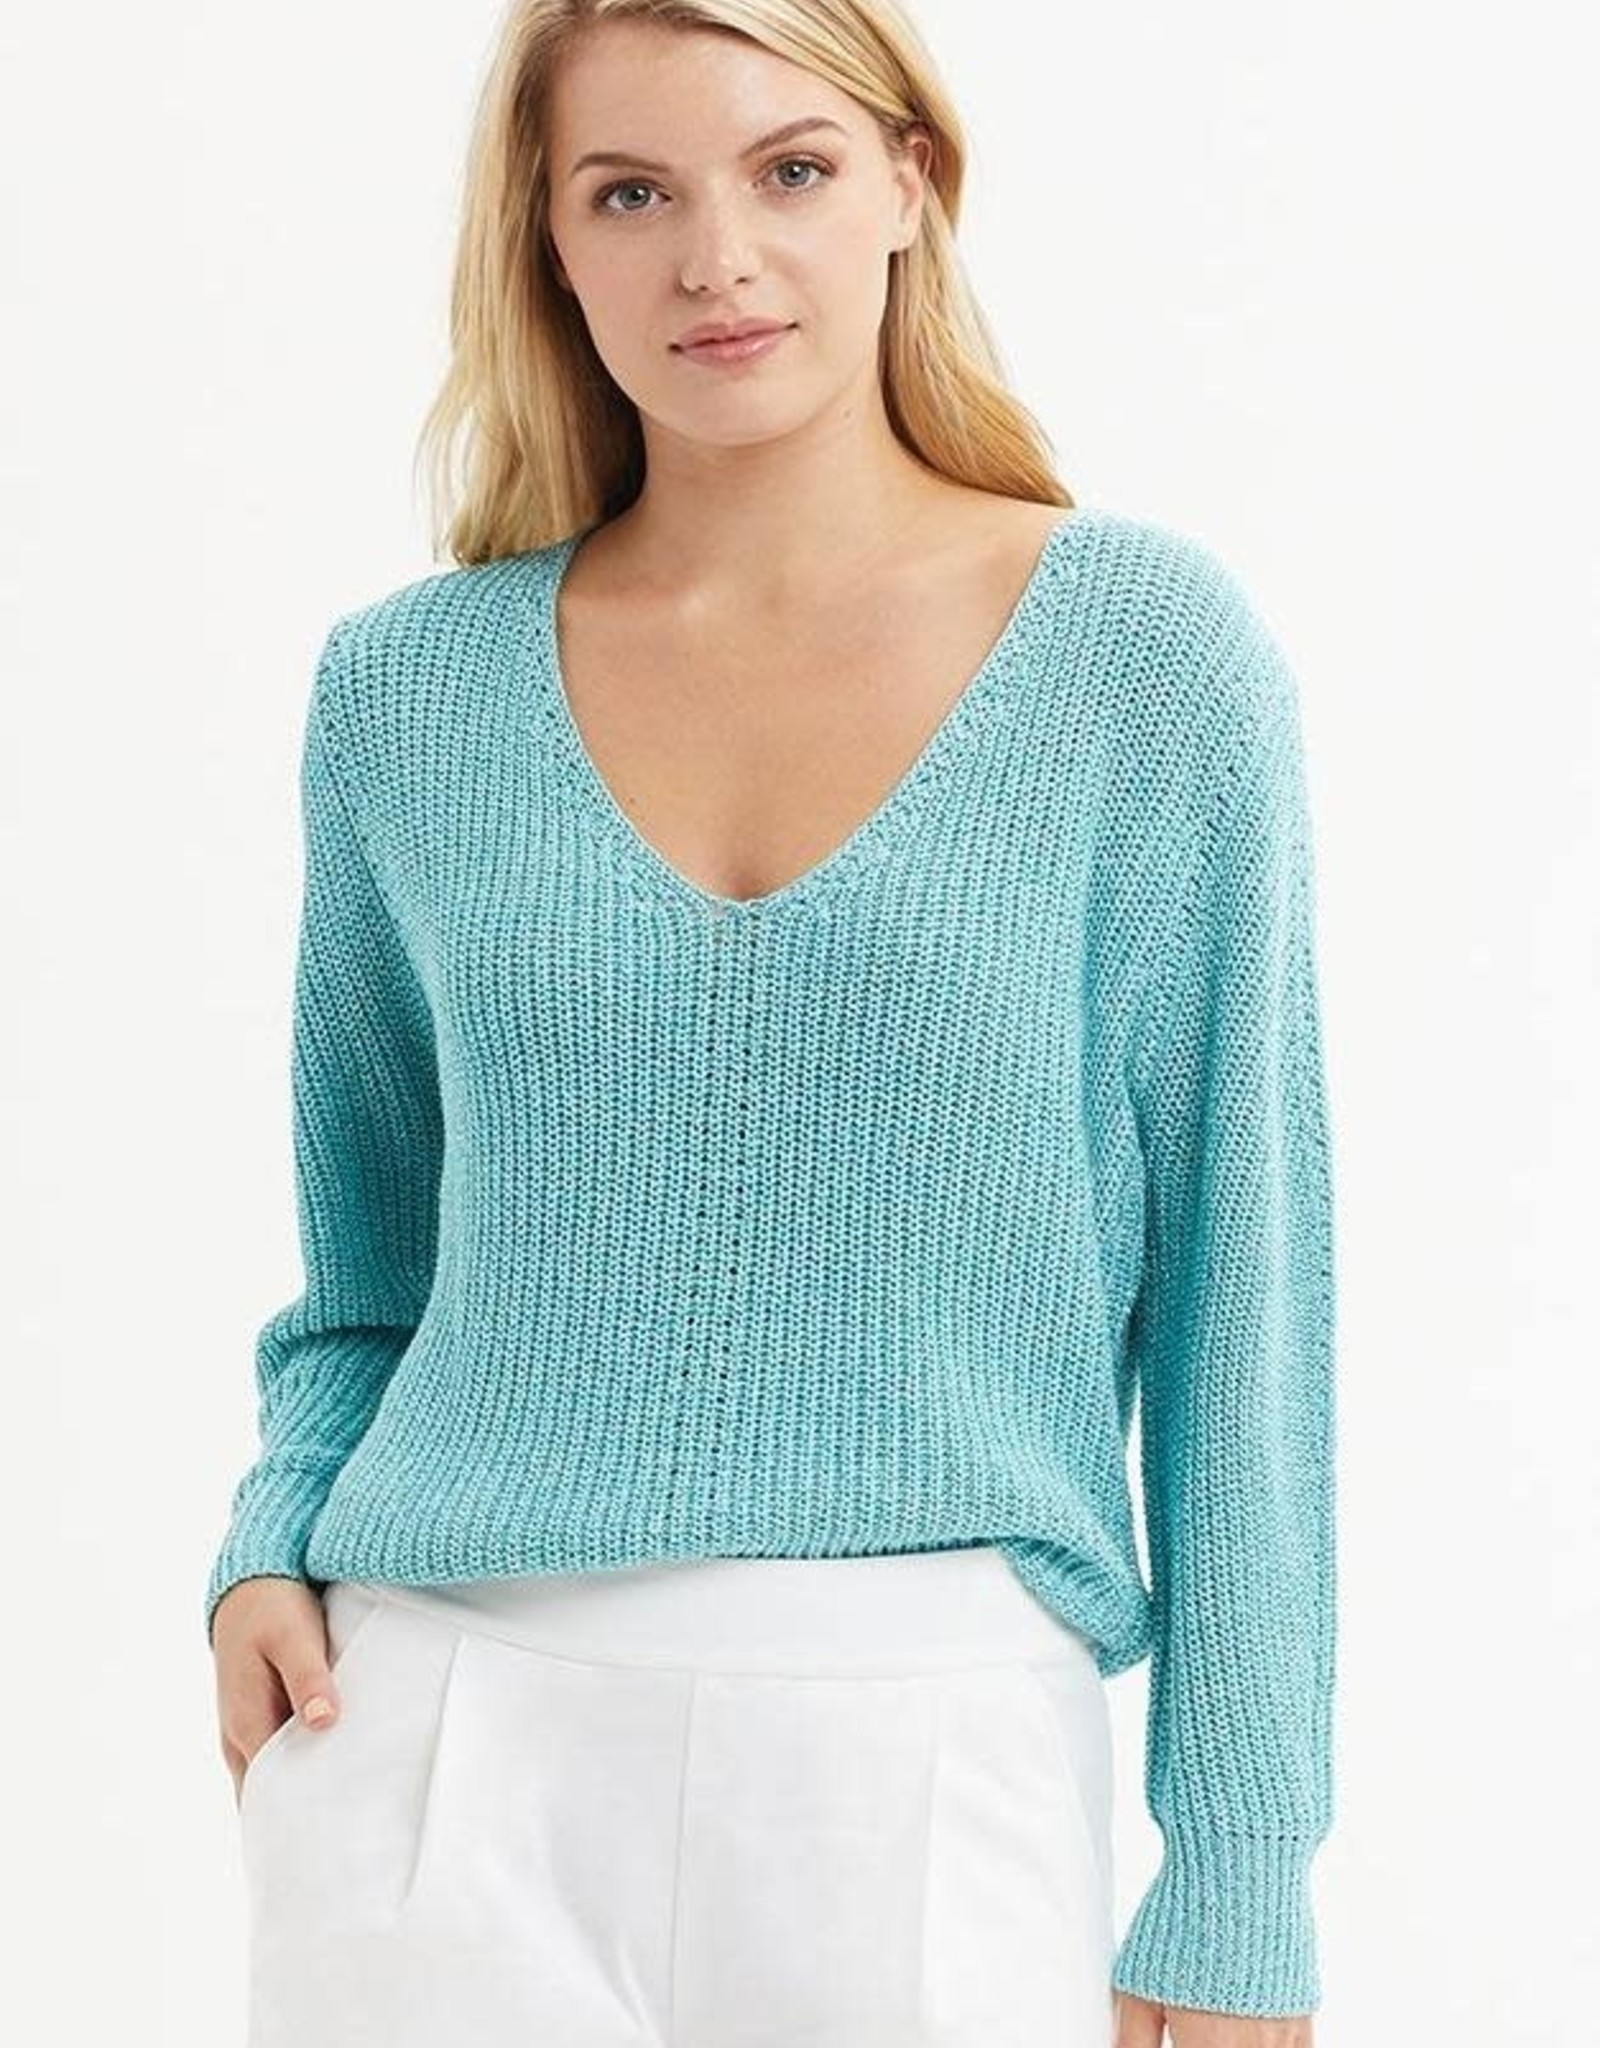 MARIE OLIVER METALLIC LS SWEATER